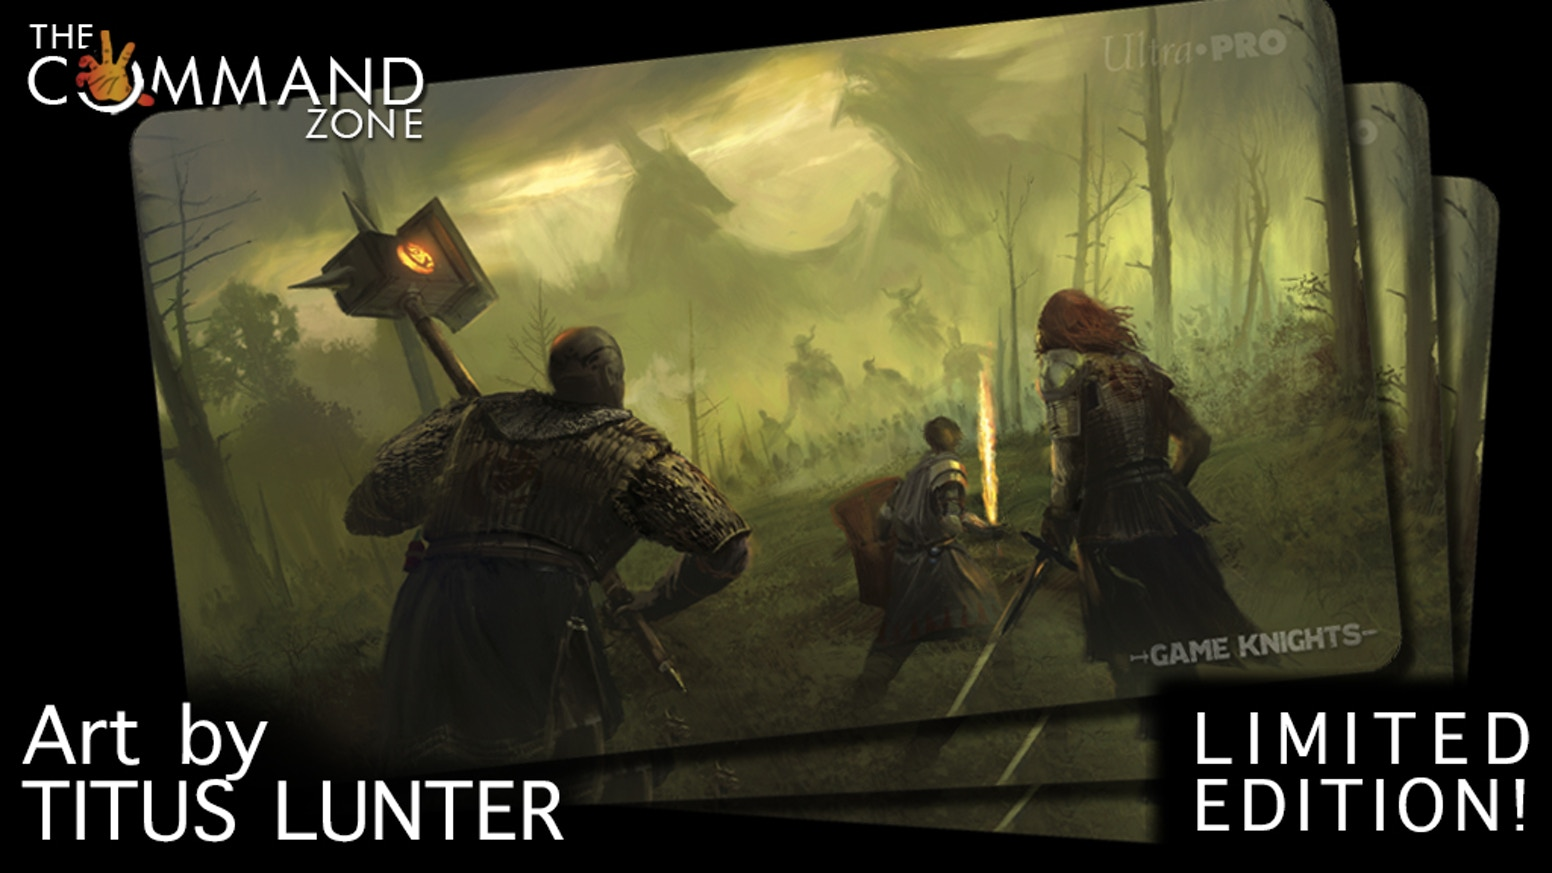 Last Stand Limited Edition Game Knights Playmat By Jimmy